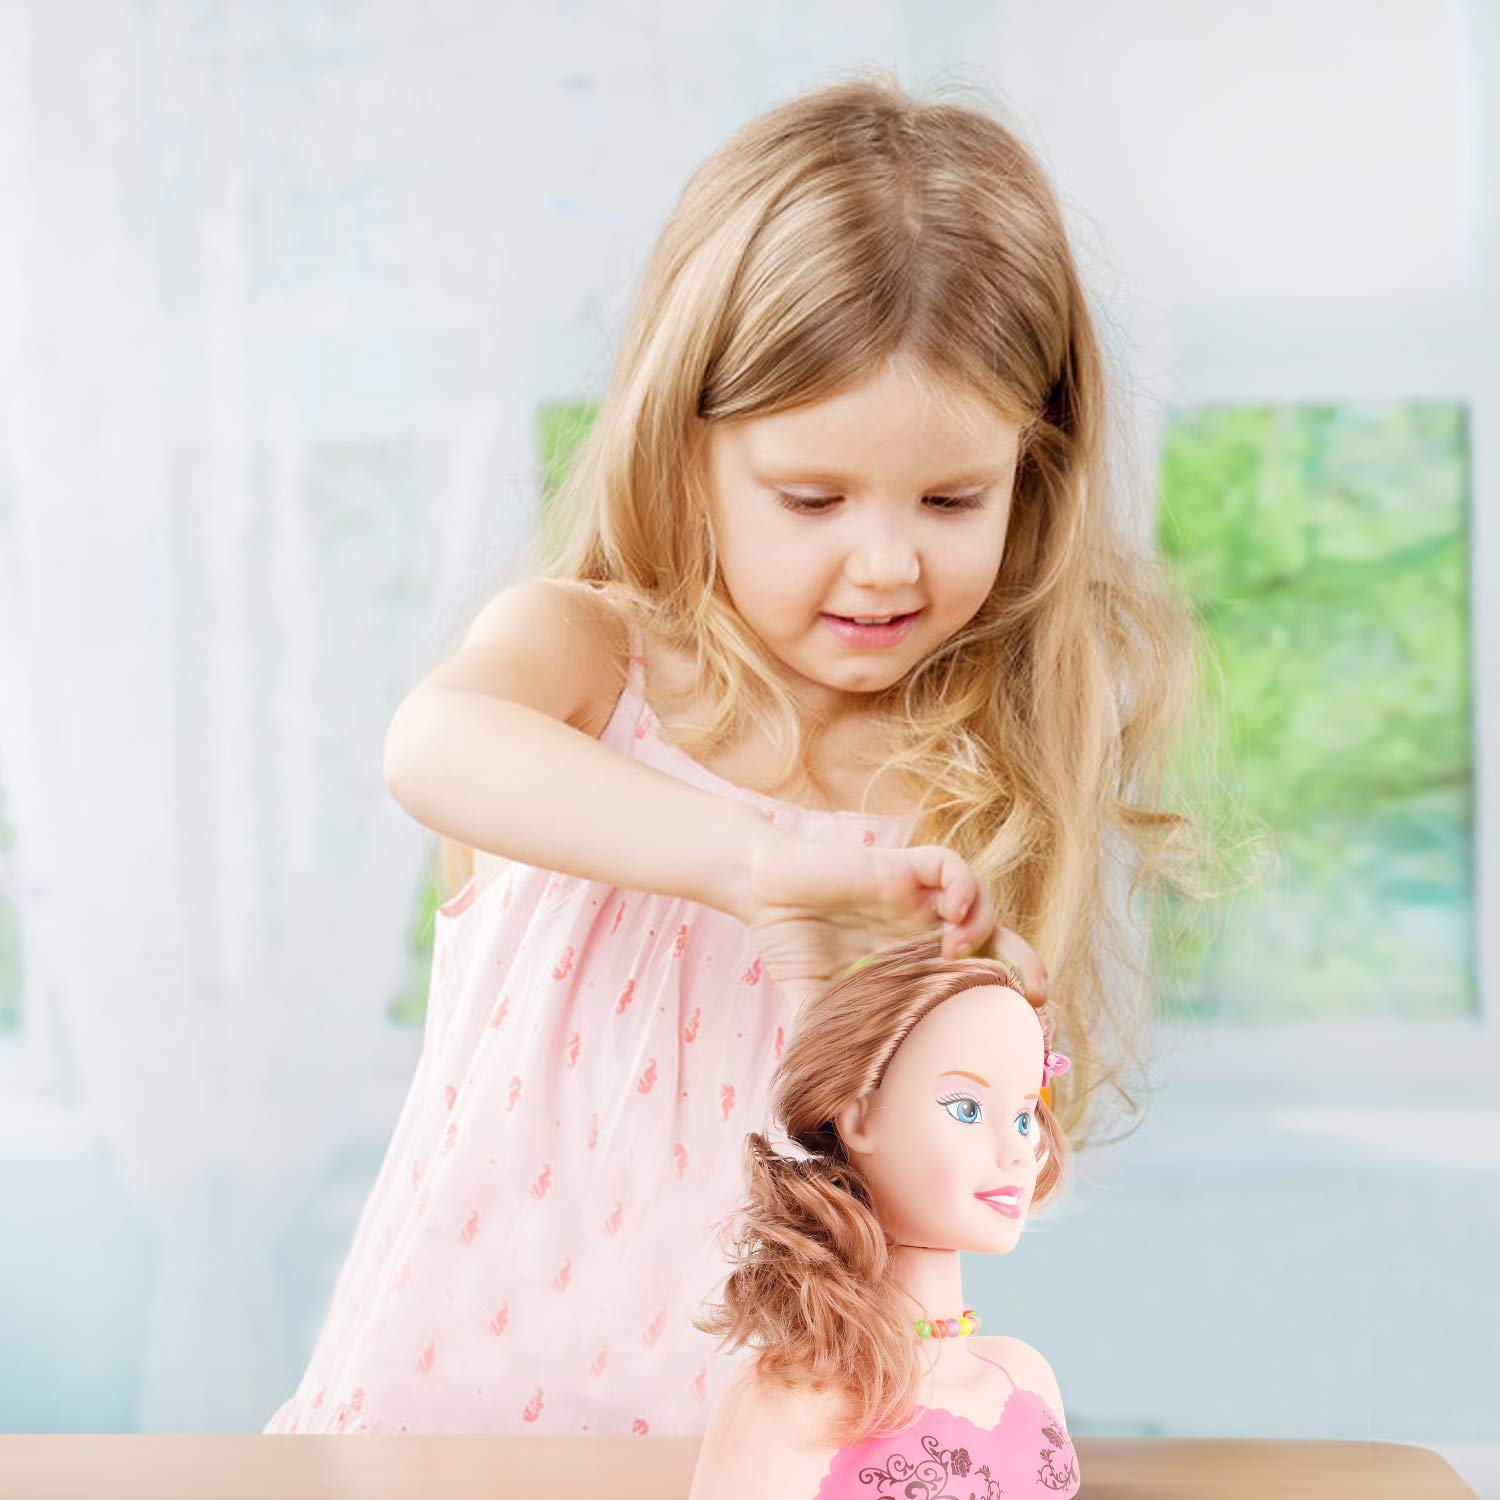 Brunette Liberty Imports Princess Styling Head Doll Playset with Beauty and Fashion Accessories for Girls